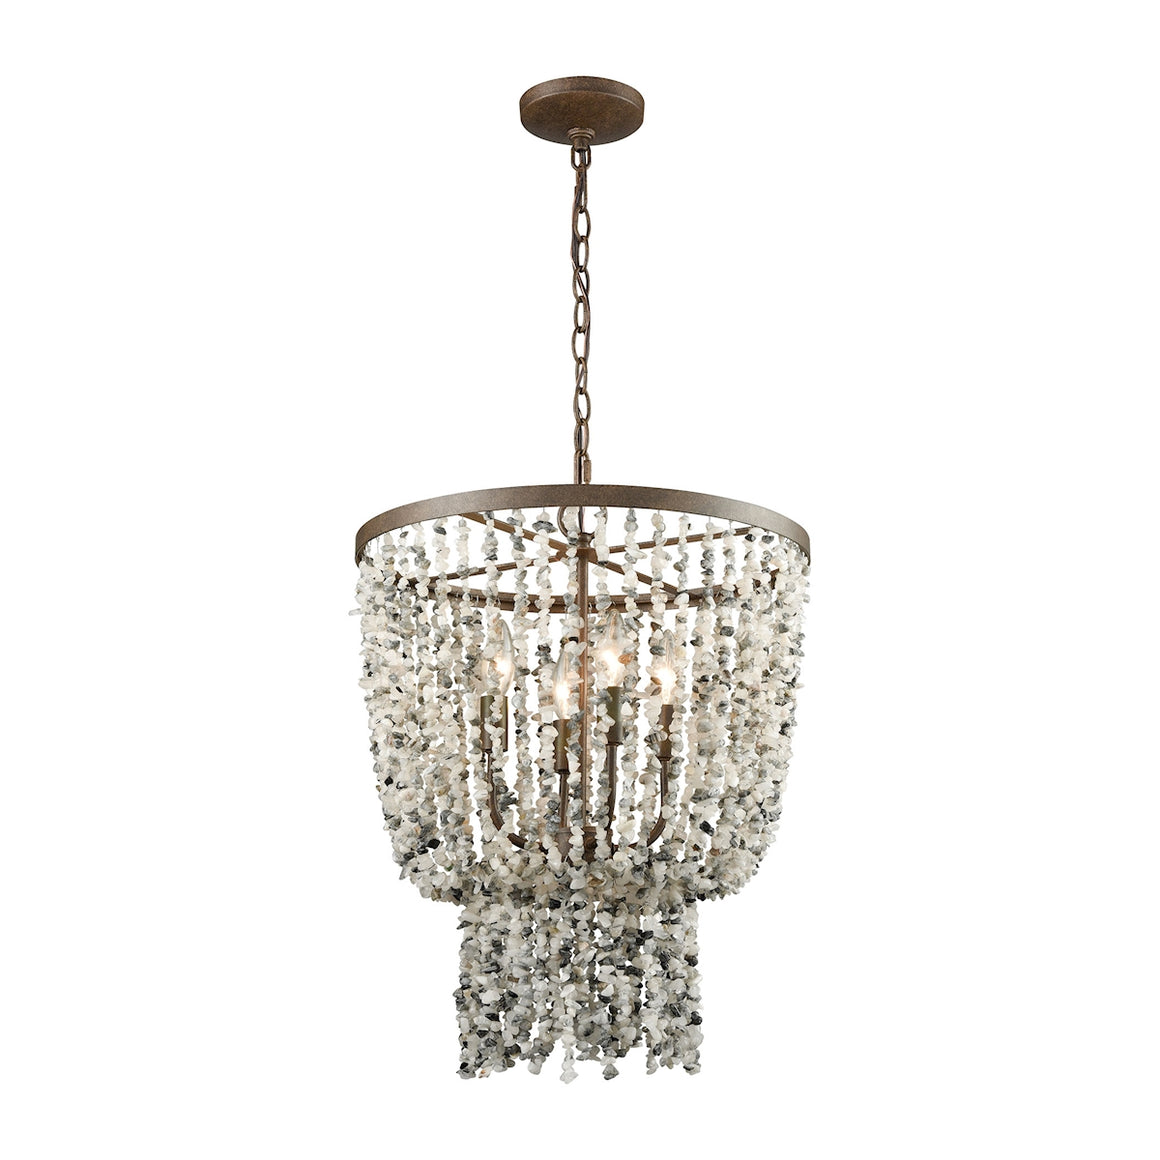 Agate Stones 4 Light Chandelier In Weathered Bronze With Gray Agate Stones 65307/4 by Elk Lighting